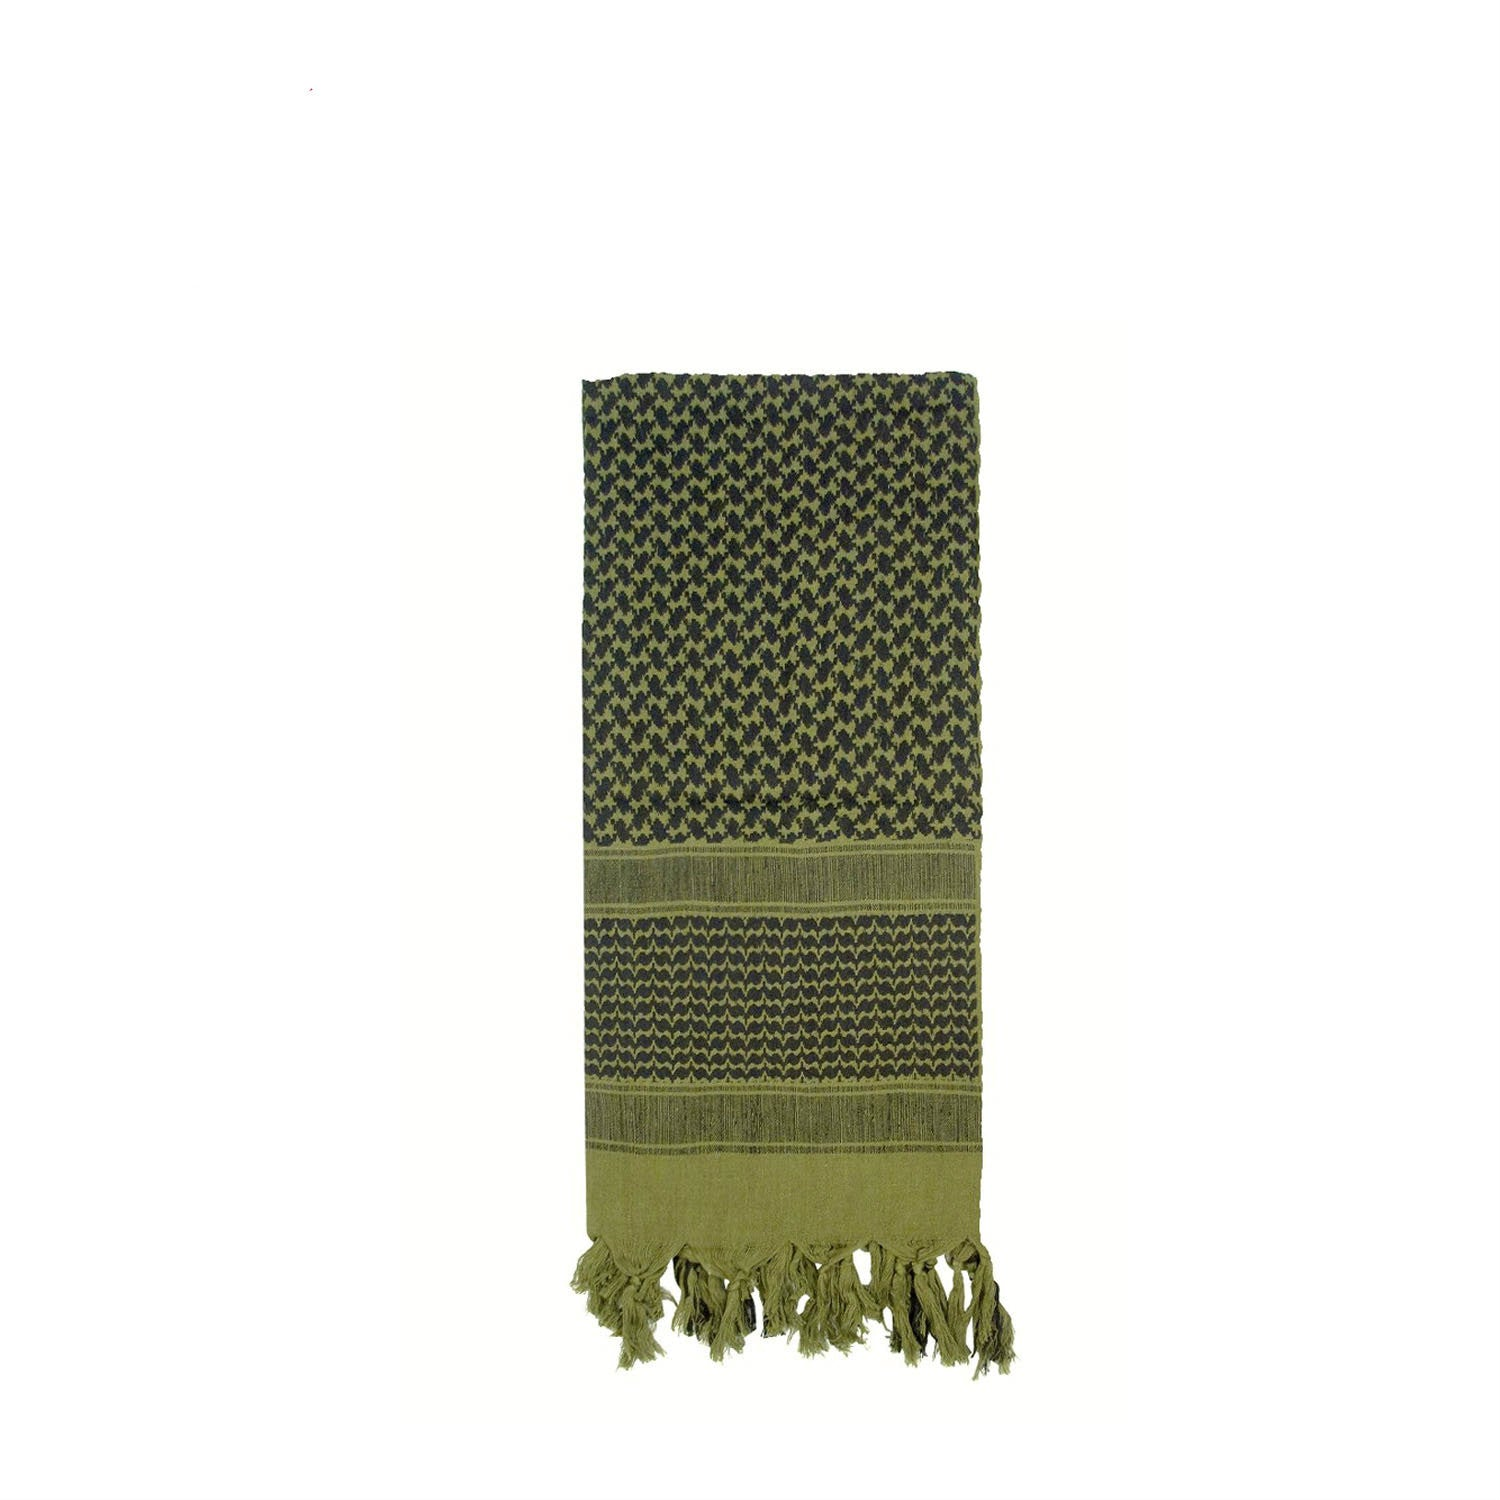 Shemagh Tactical Desert Scarf Olive Drab / Black